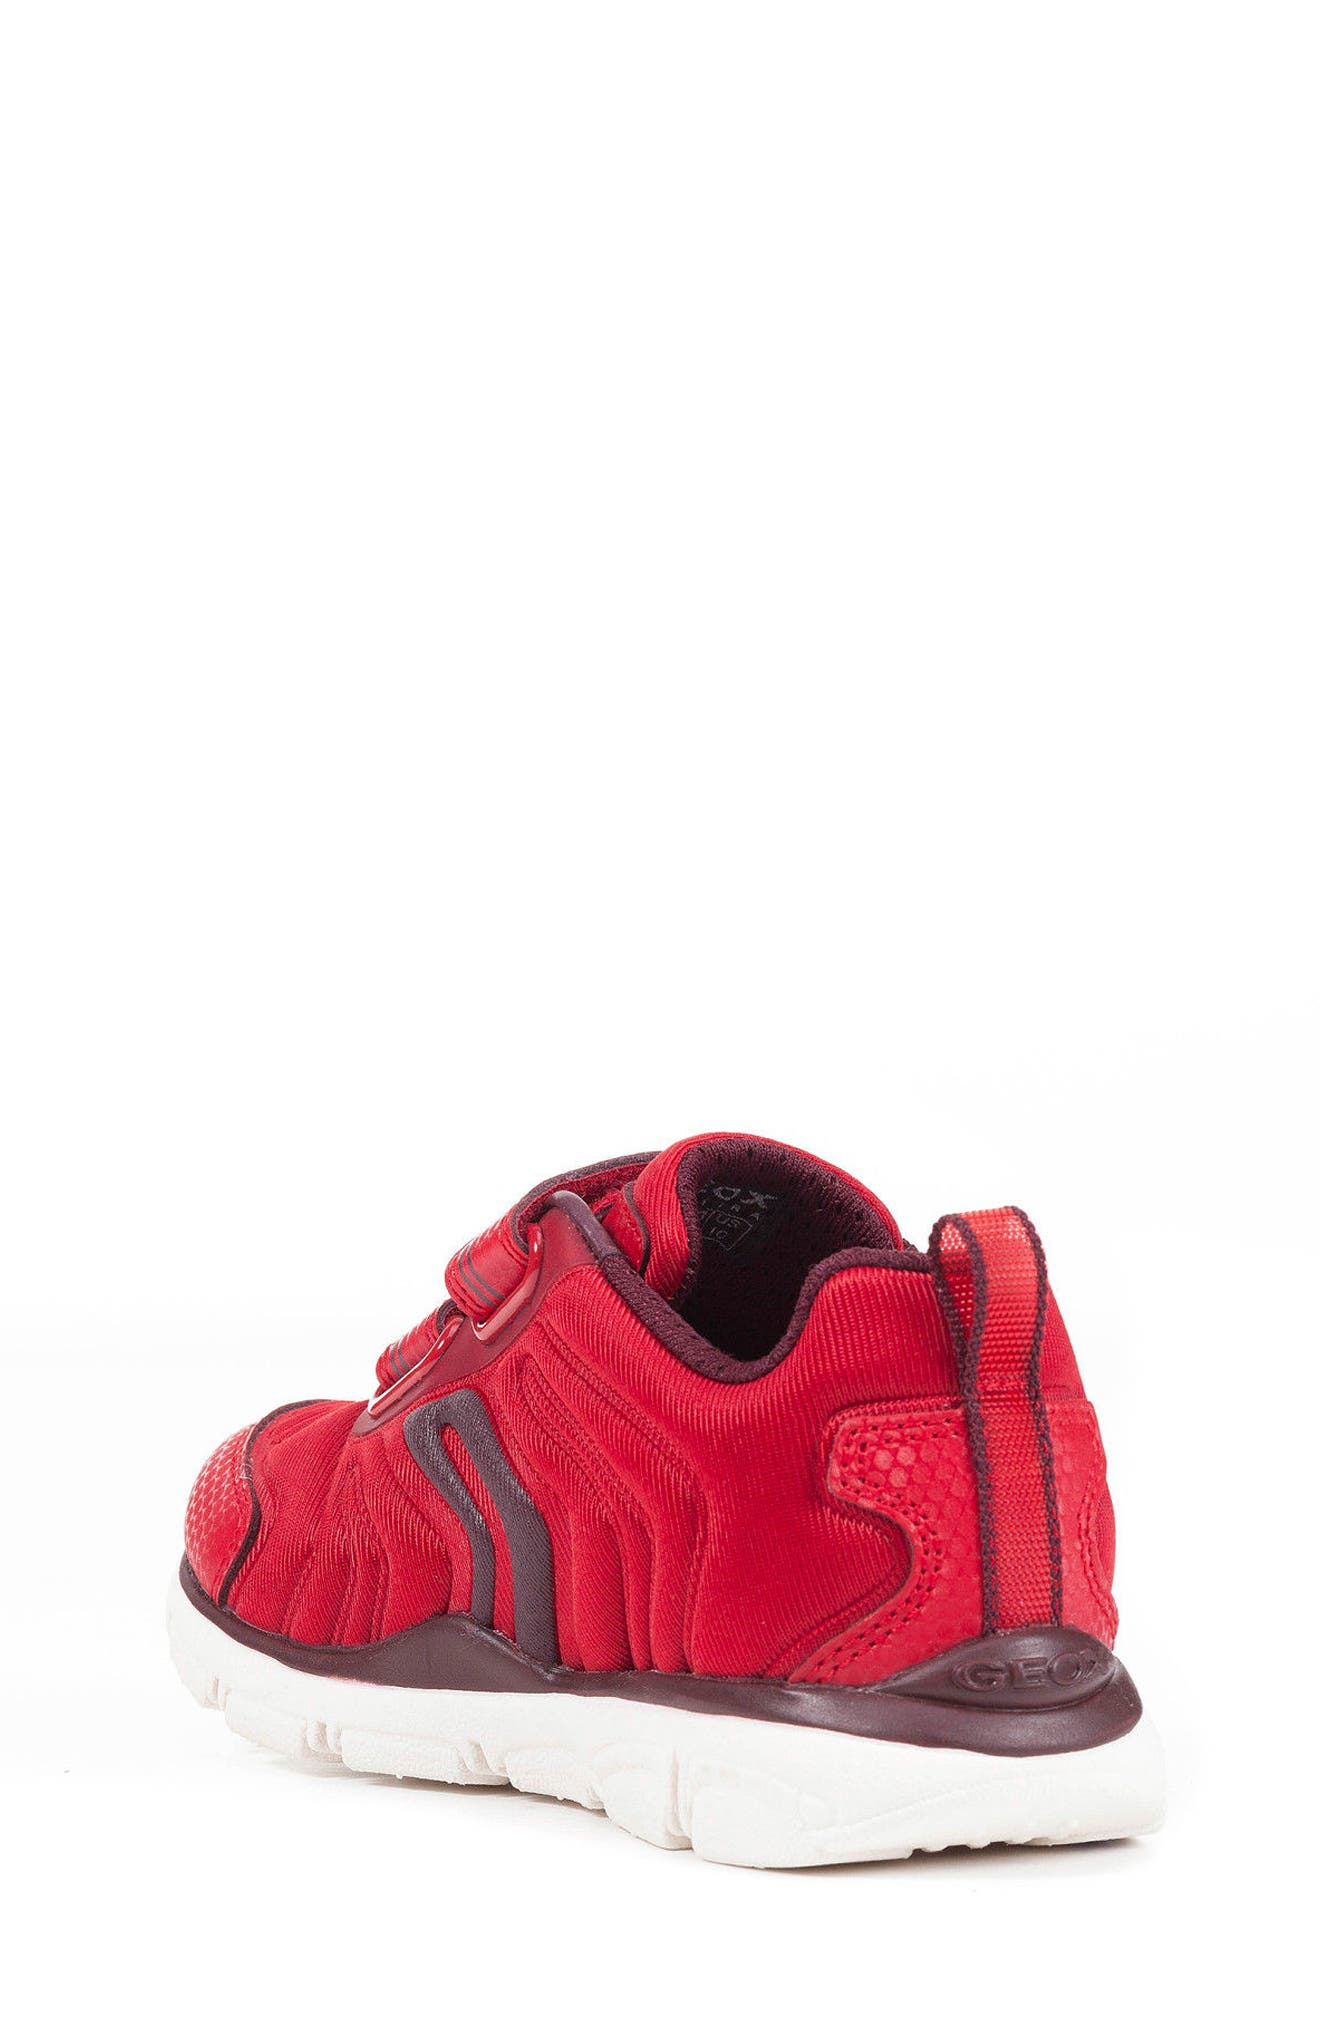 Alternate Image 2  - Geox Torque Sneaker (Toddler, Little Kid & Big Kid)